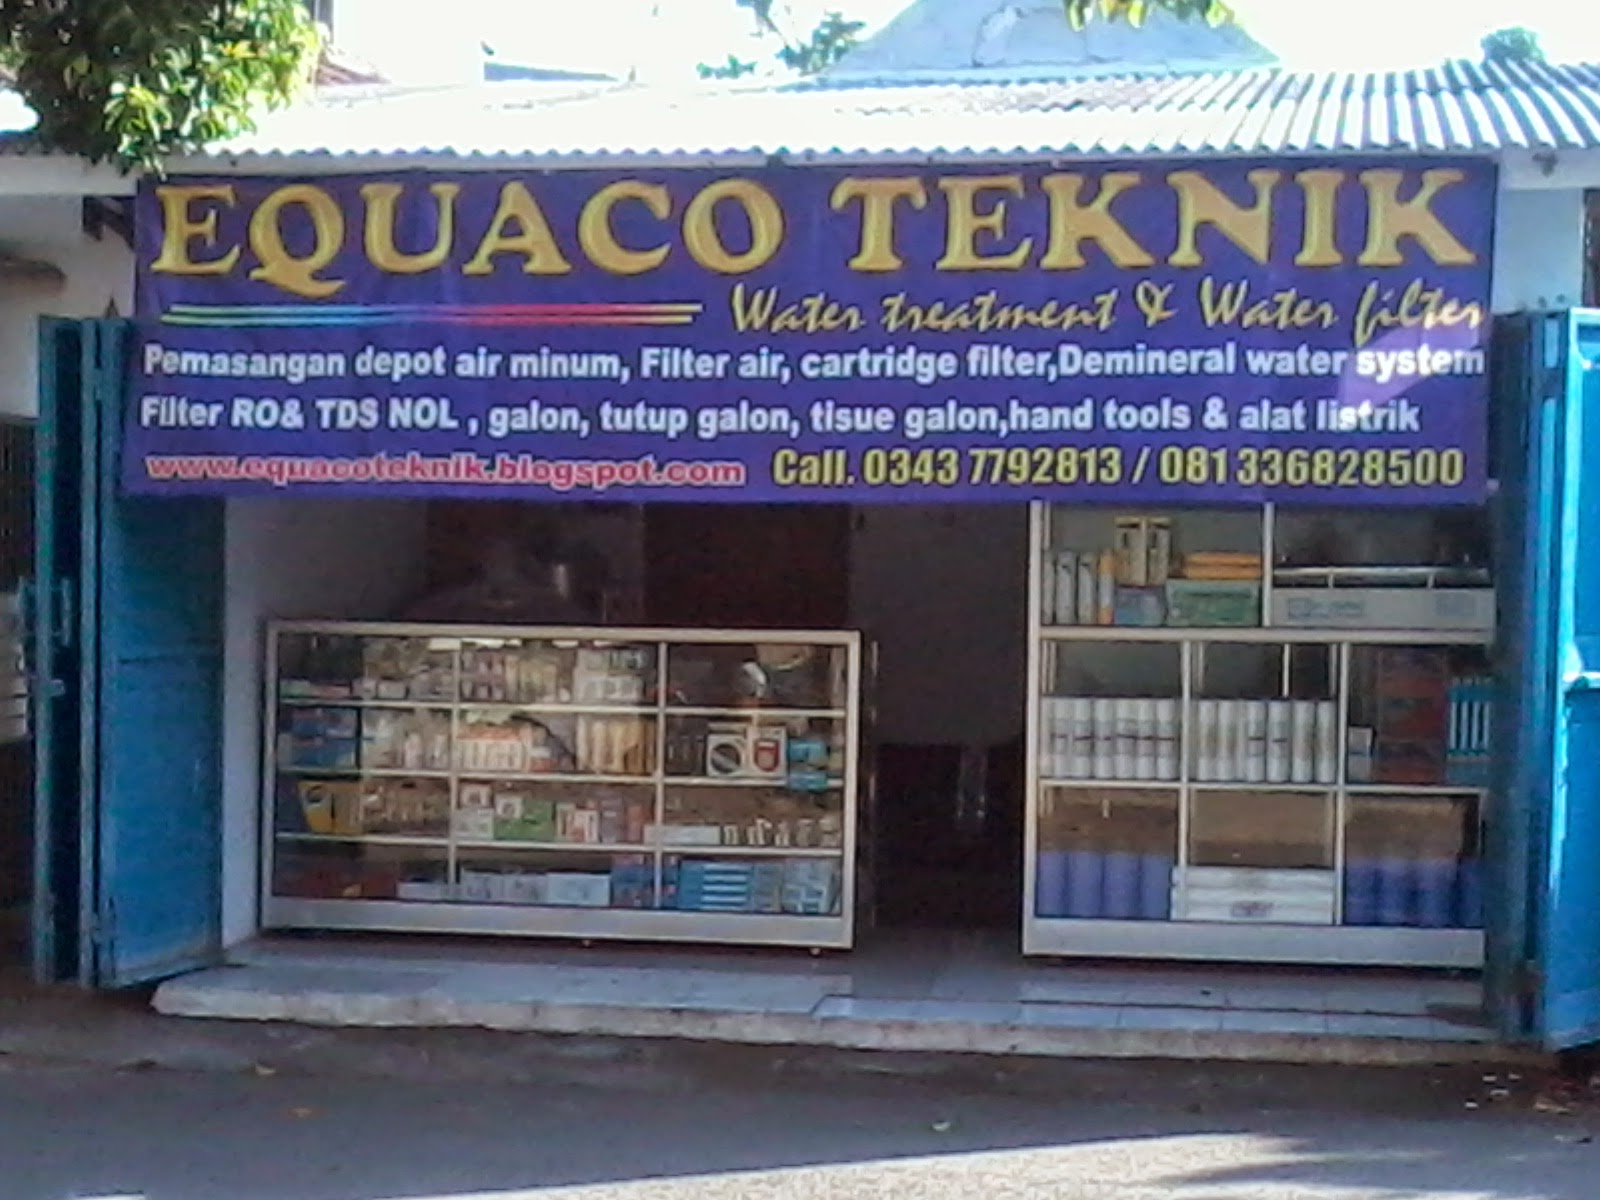 EQUACO TEKNIK WATER FILTER